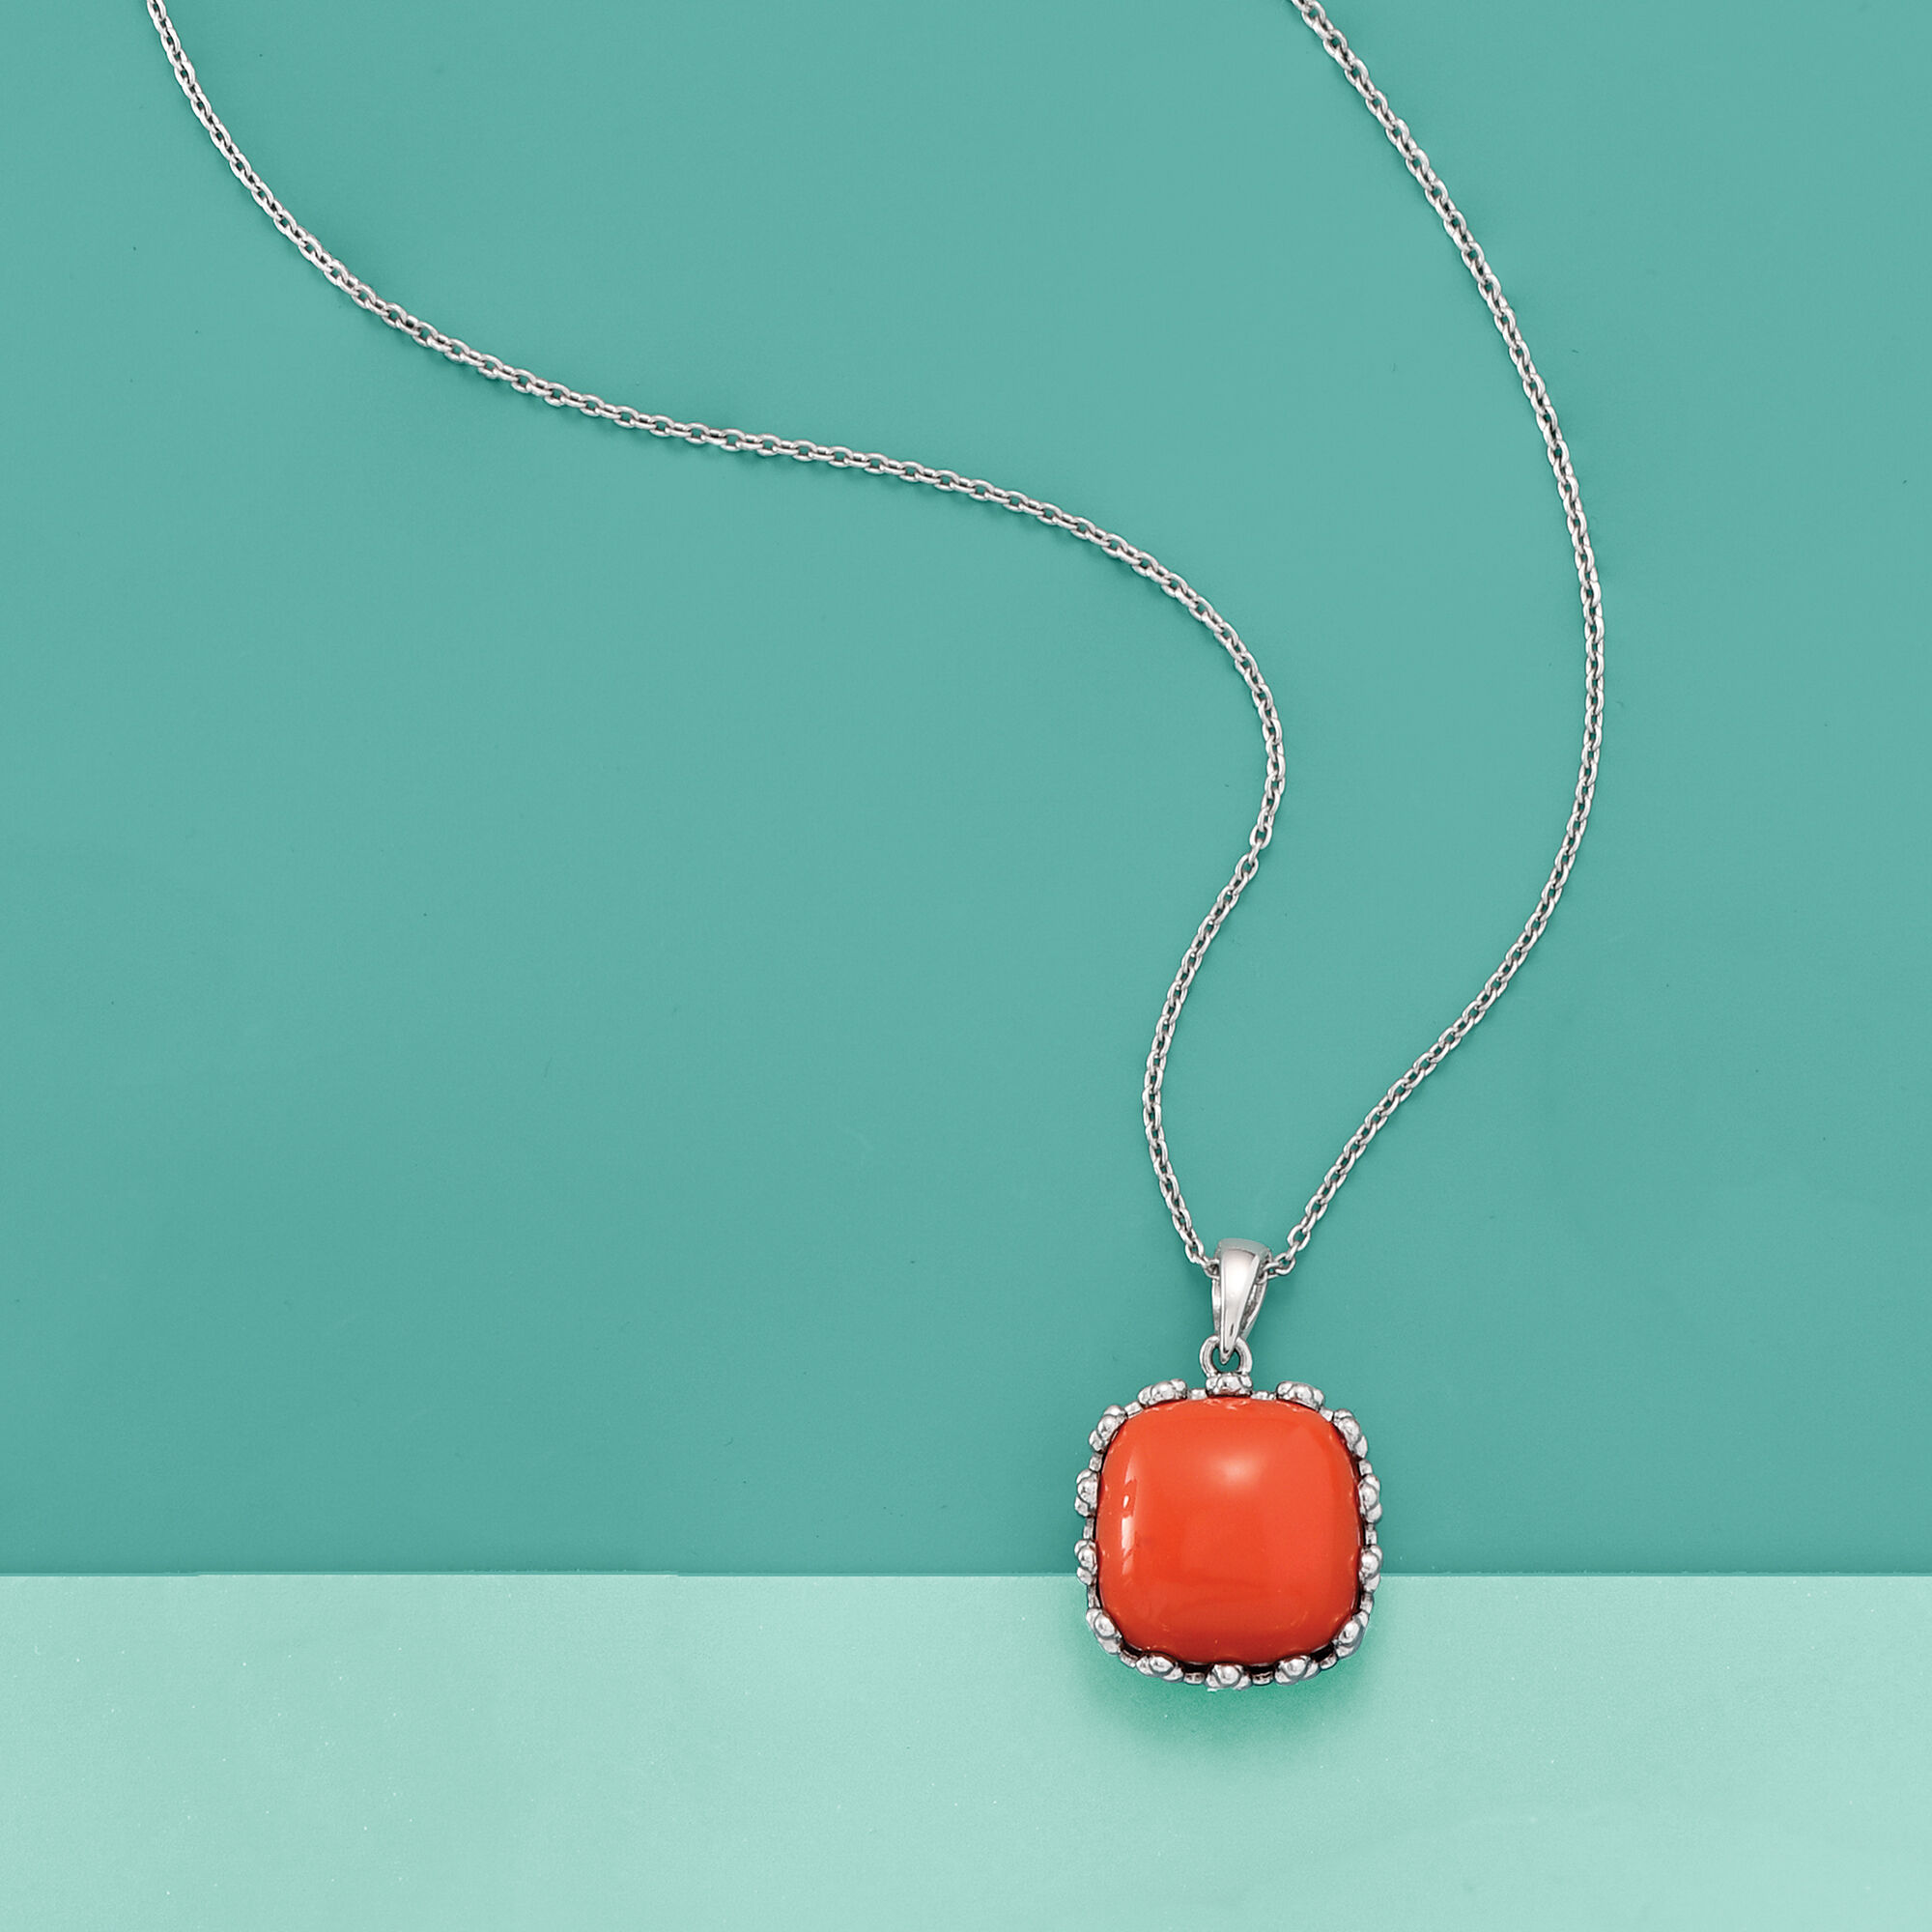 Ross-Simons Orange Coral Square Pendant Necklace in Sterling Silver